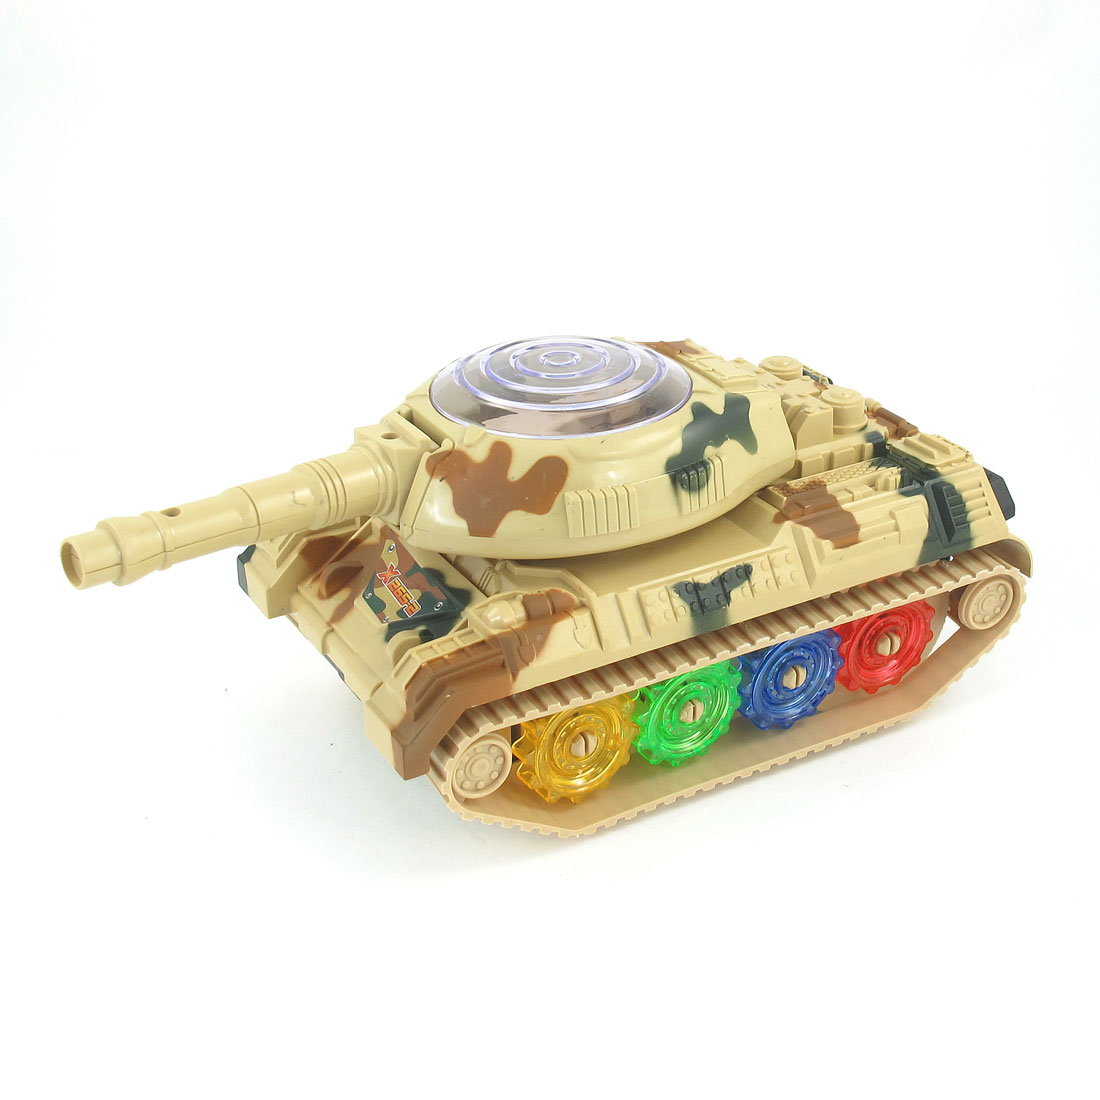 Beige Plastic Flashing LED Light Electric Panzer Tank Toy for Kids